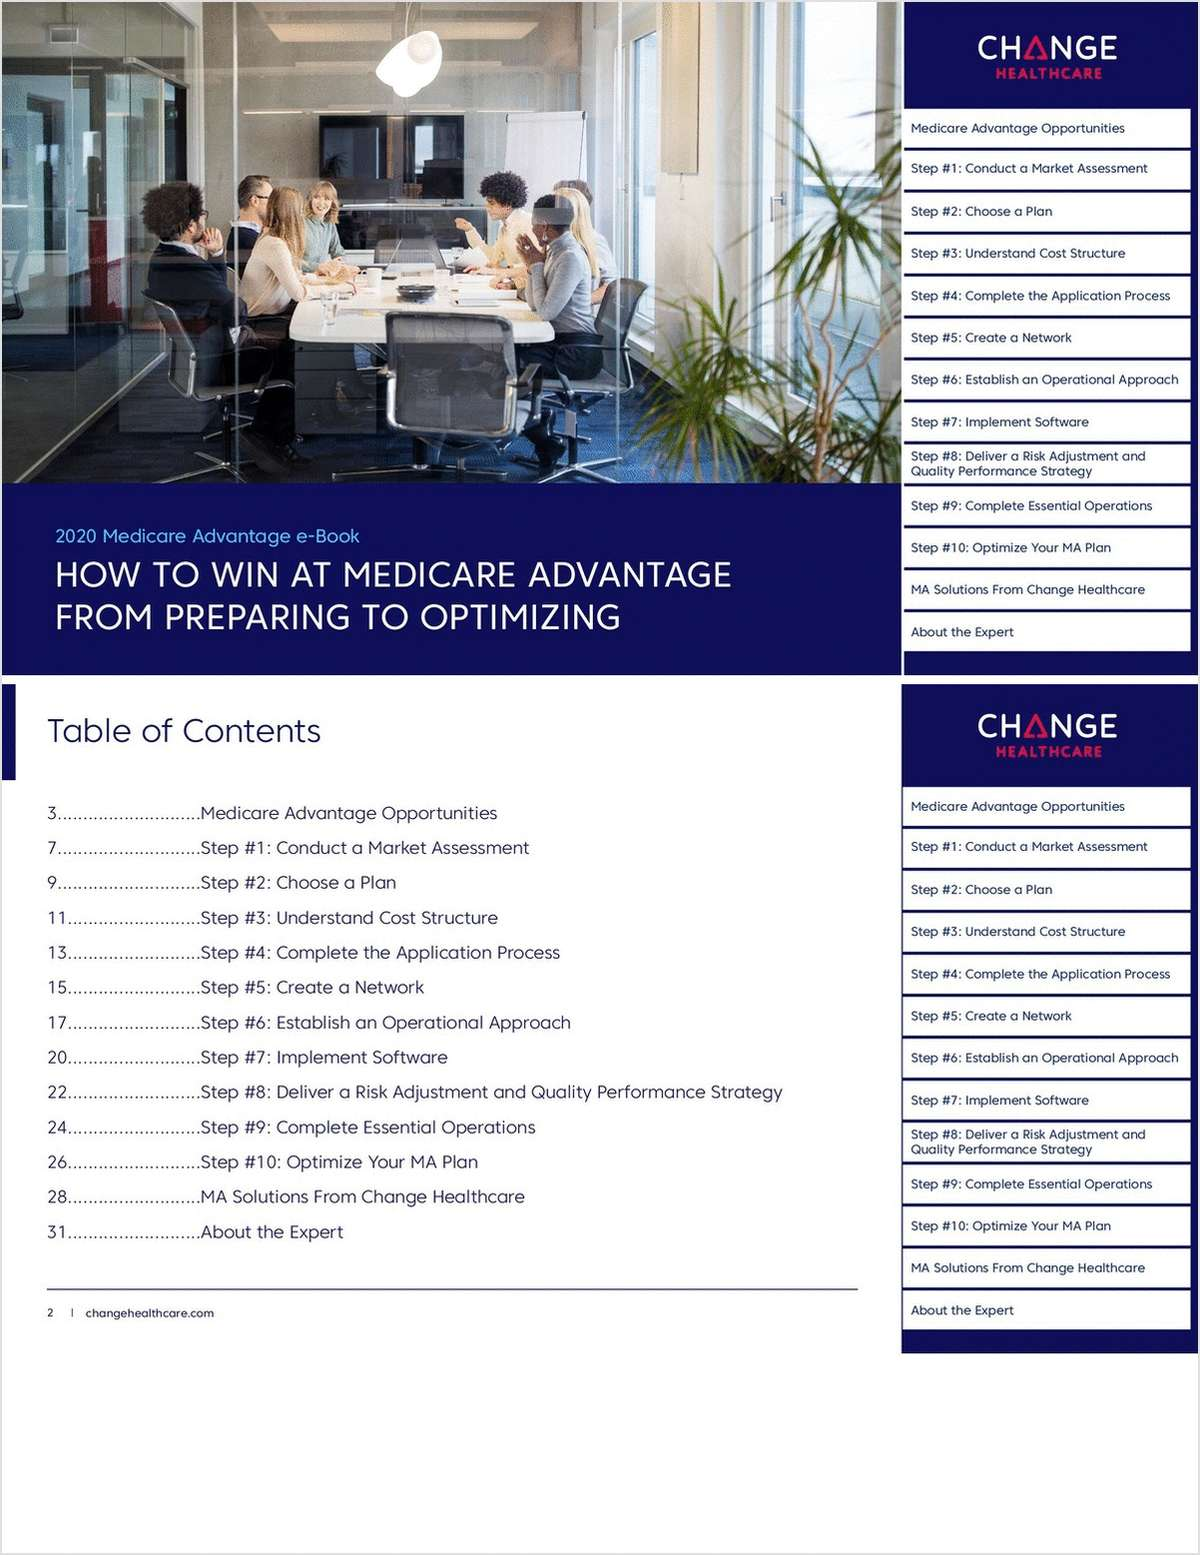 Your Guide on How to Win at Medicare Advantage